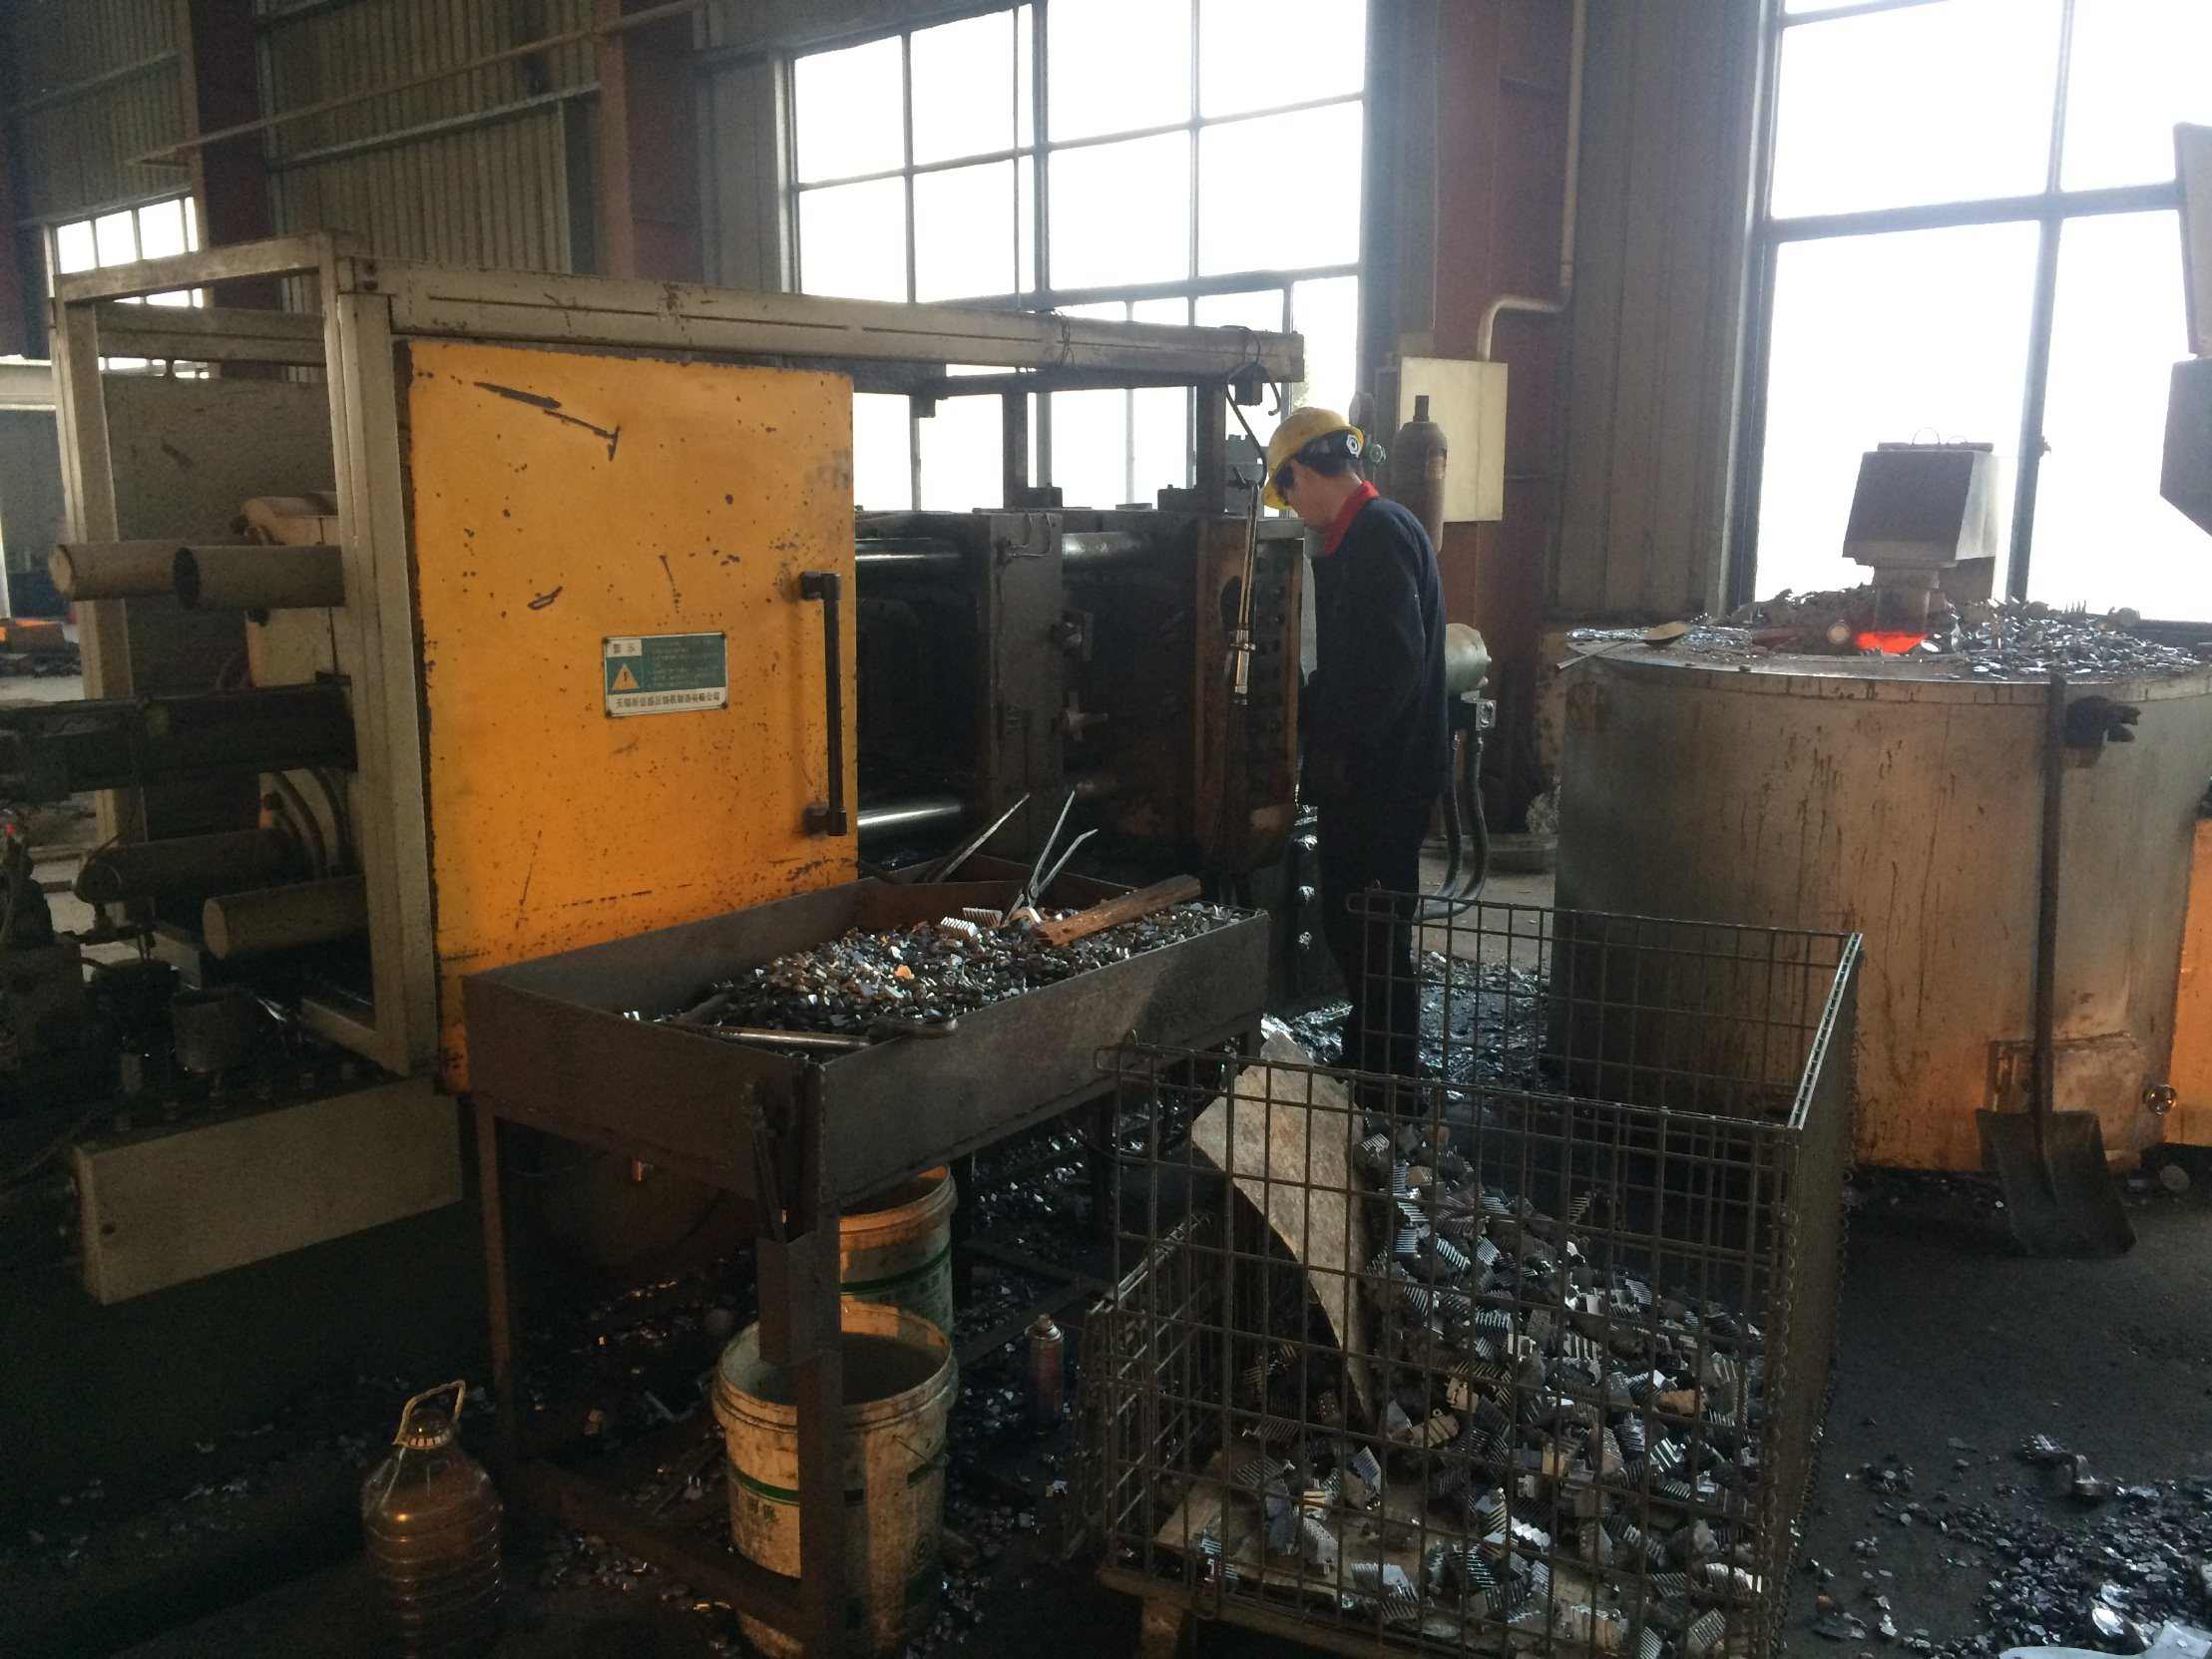 Wrench Parts OEM Die Casting Within 20 Years